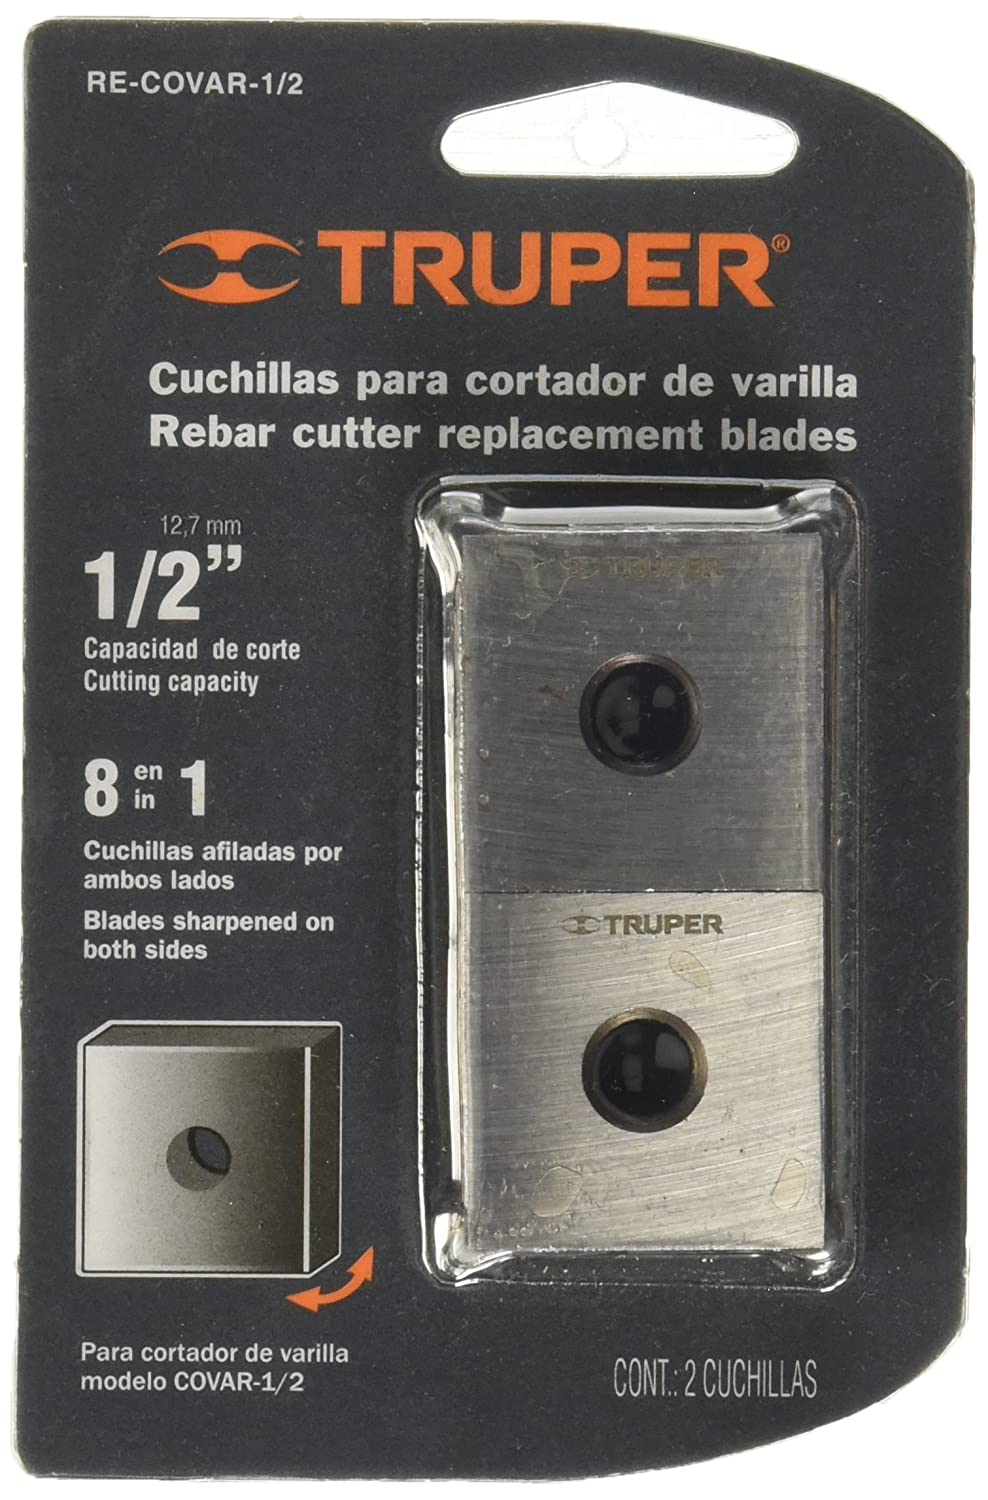 TRUPER RE-COVAR-1/2 Spare Blades for Rebar Cutters 1/2